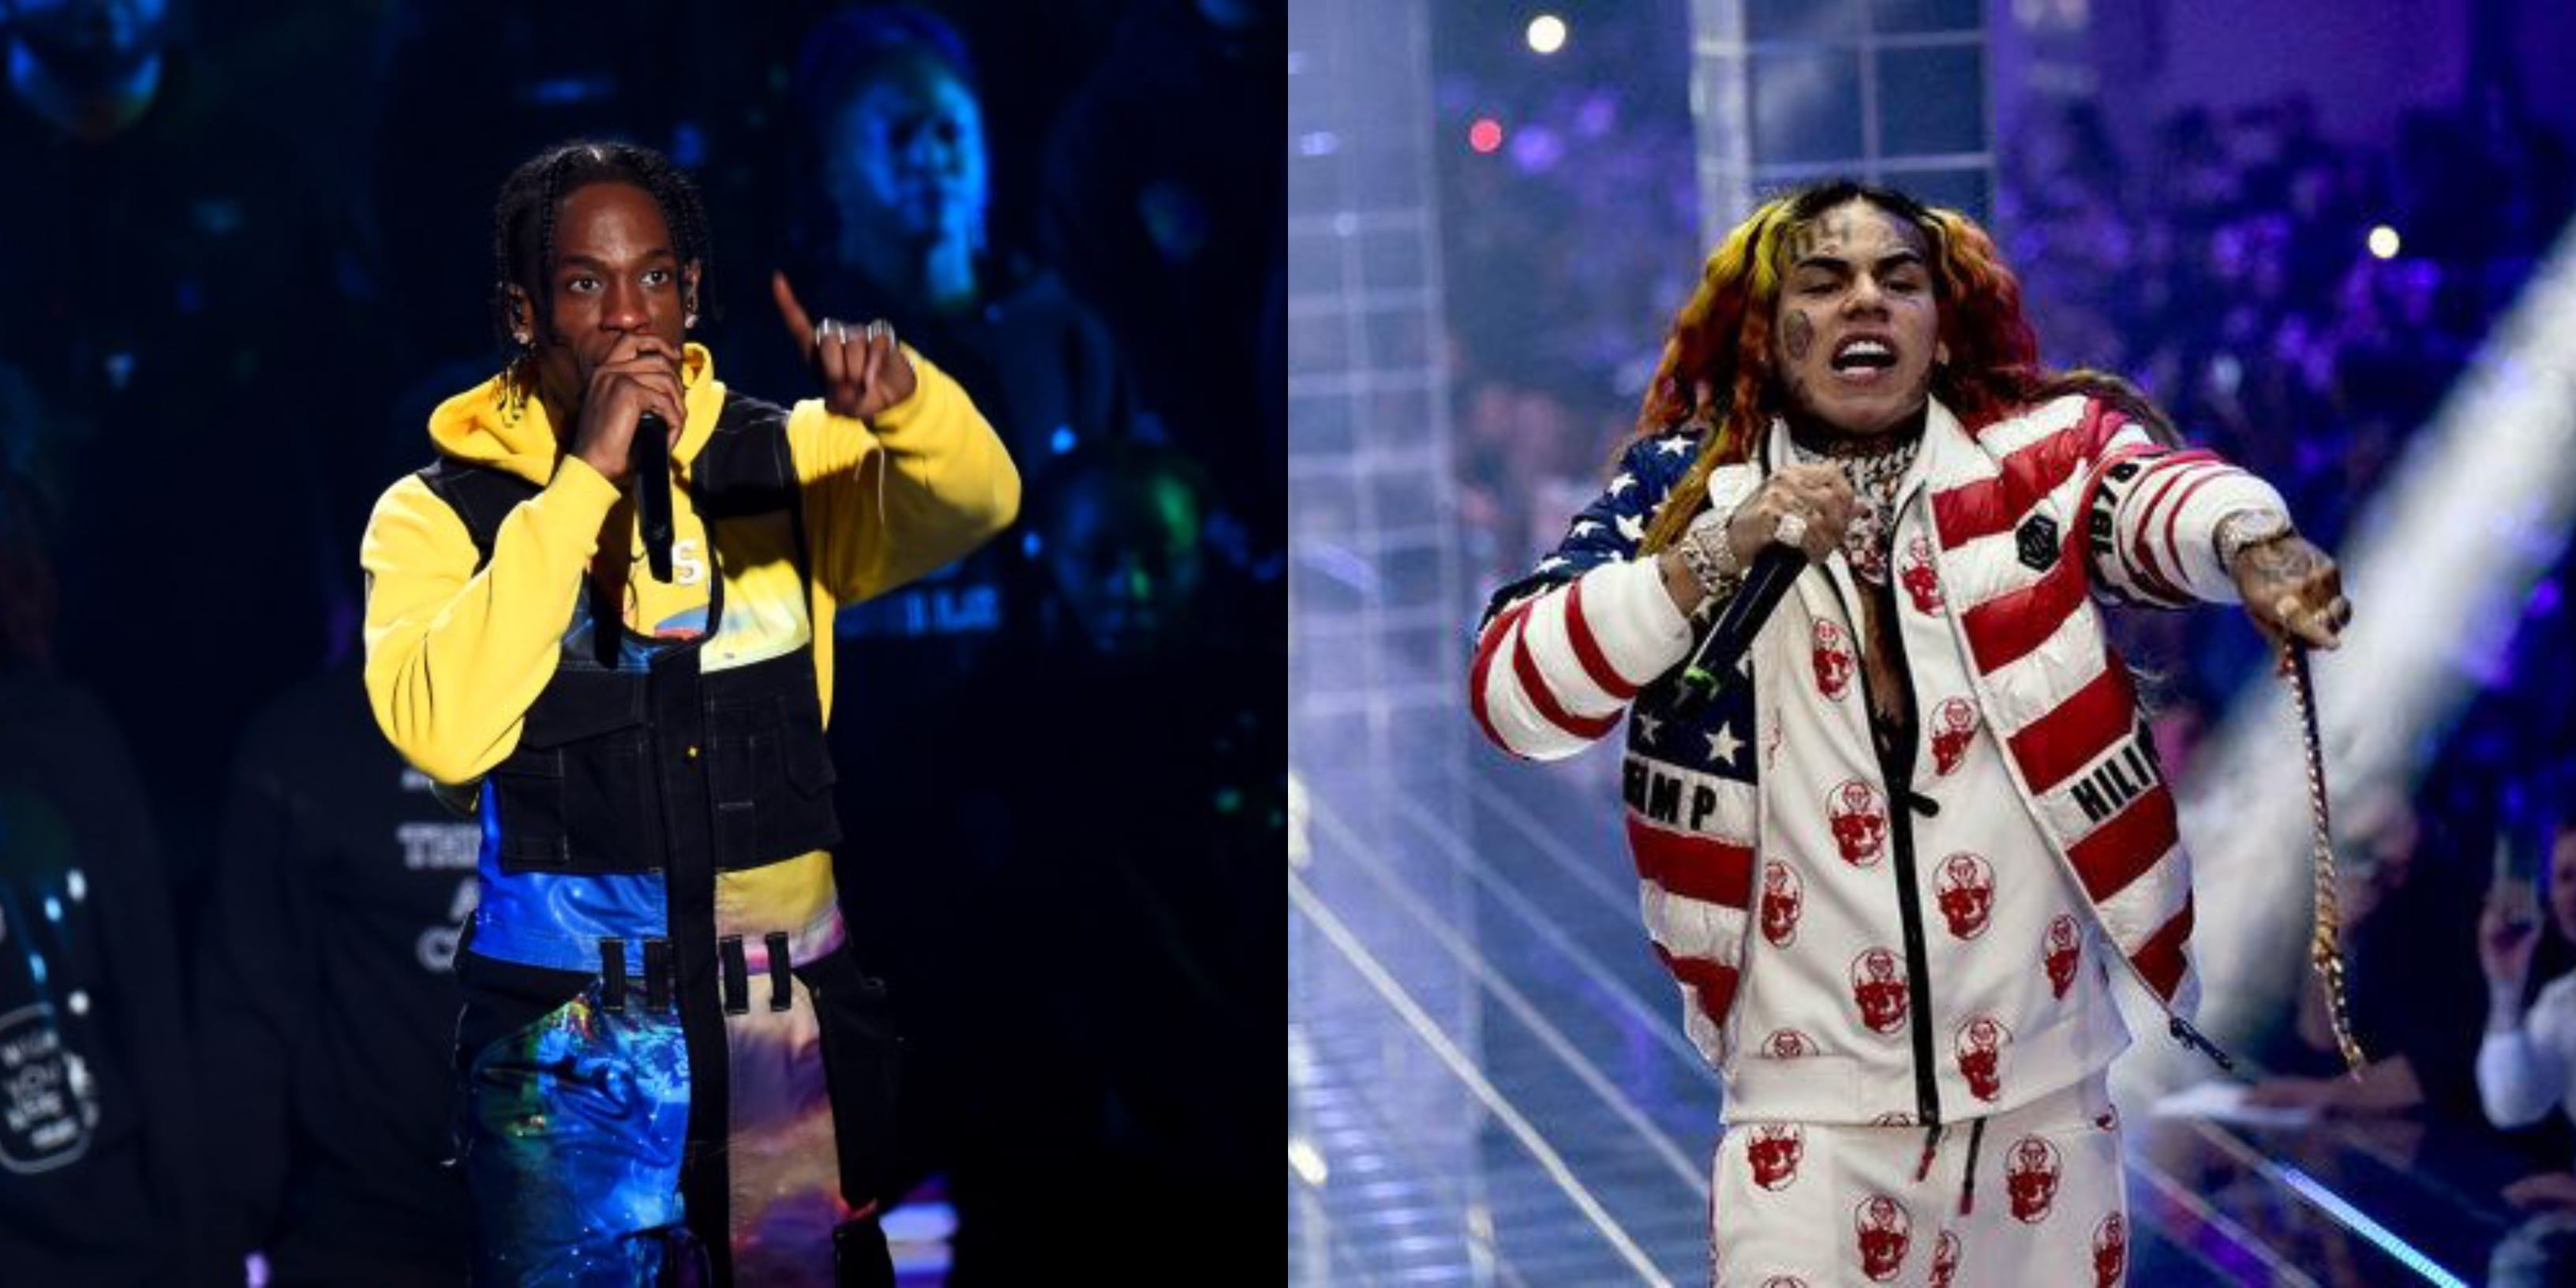 Tekashi 6ix9ine's 'DUMMY BOY' Debuts at No. 2 After Travis Scott's 'ASTROWORLD' Re-Appears at No. 1